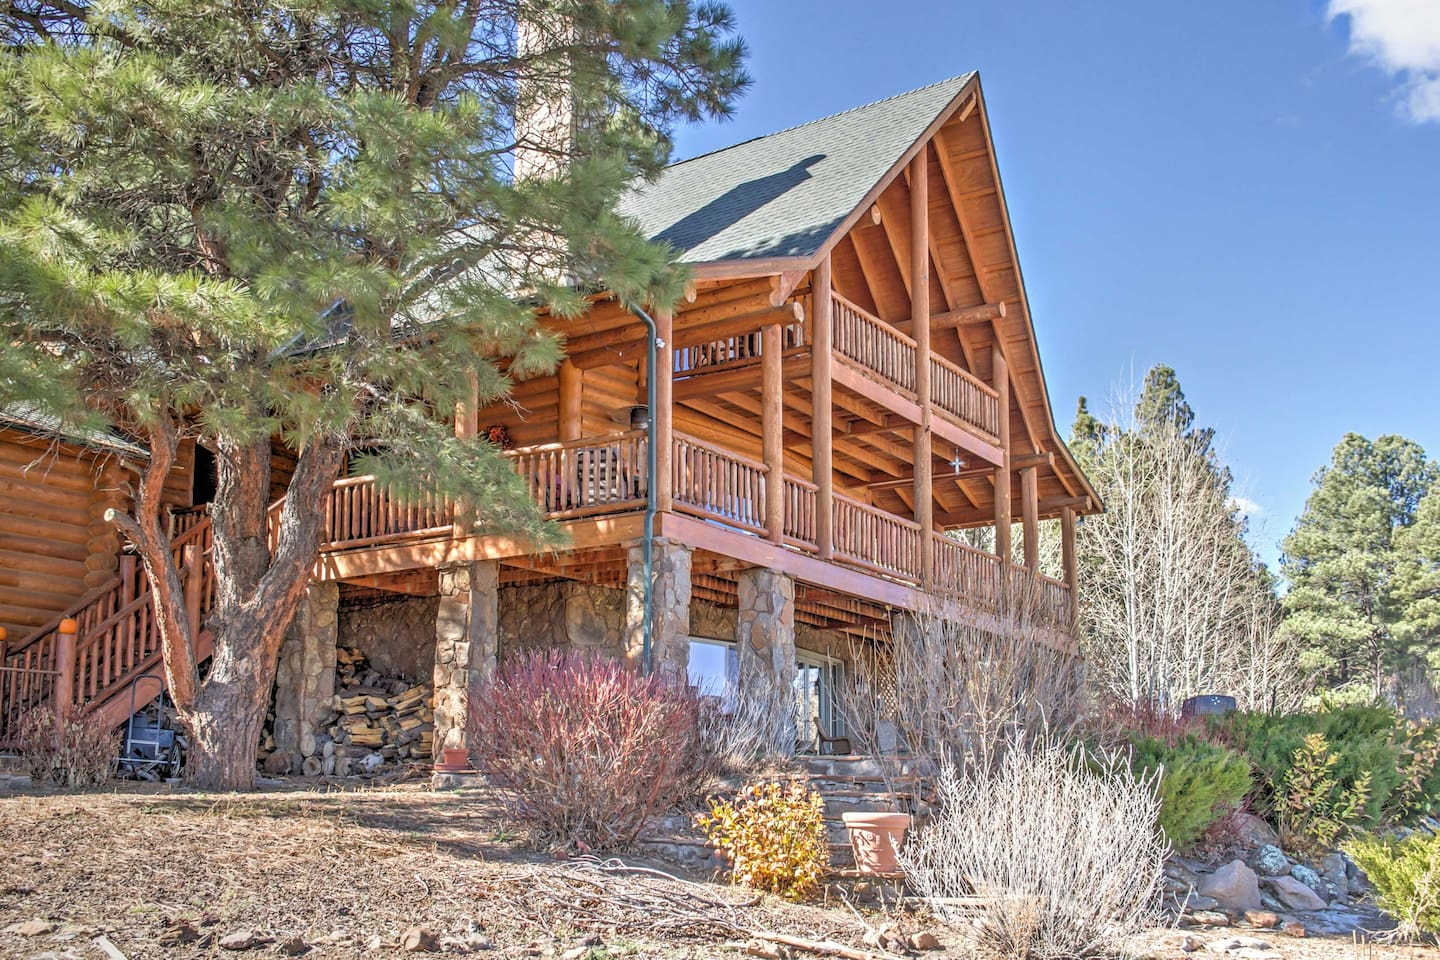 Experience a memorable Arizona getaway at this Flagstaff vacation rental cabin!